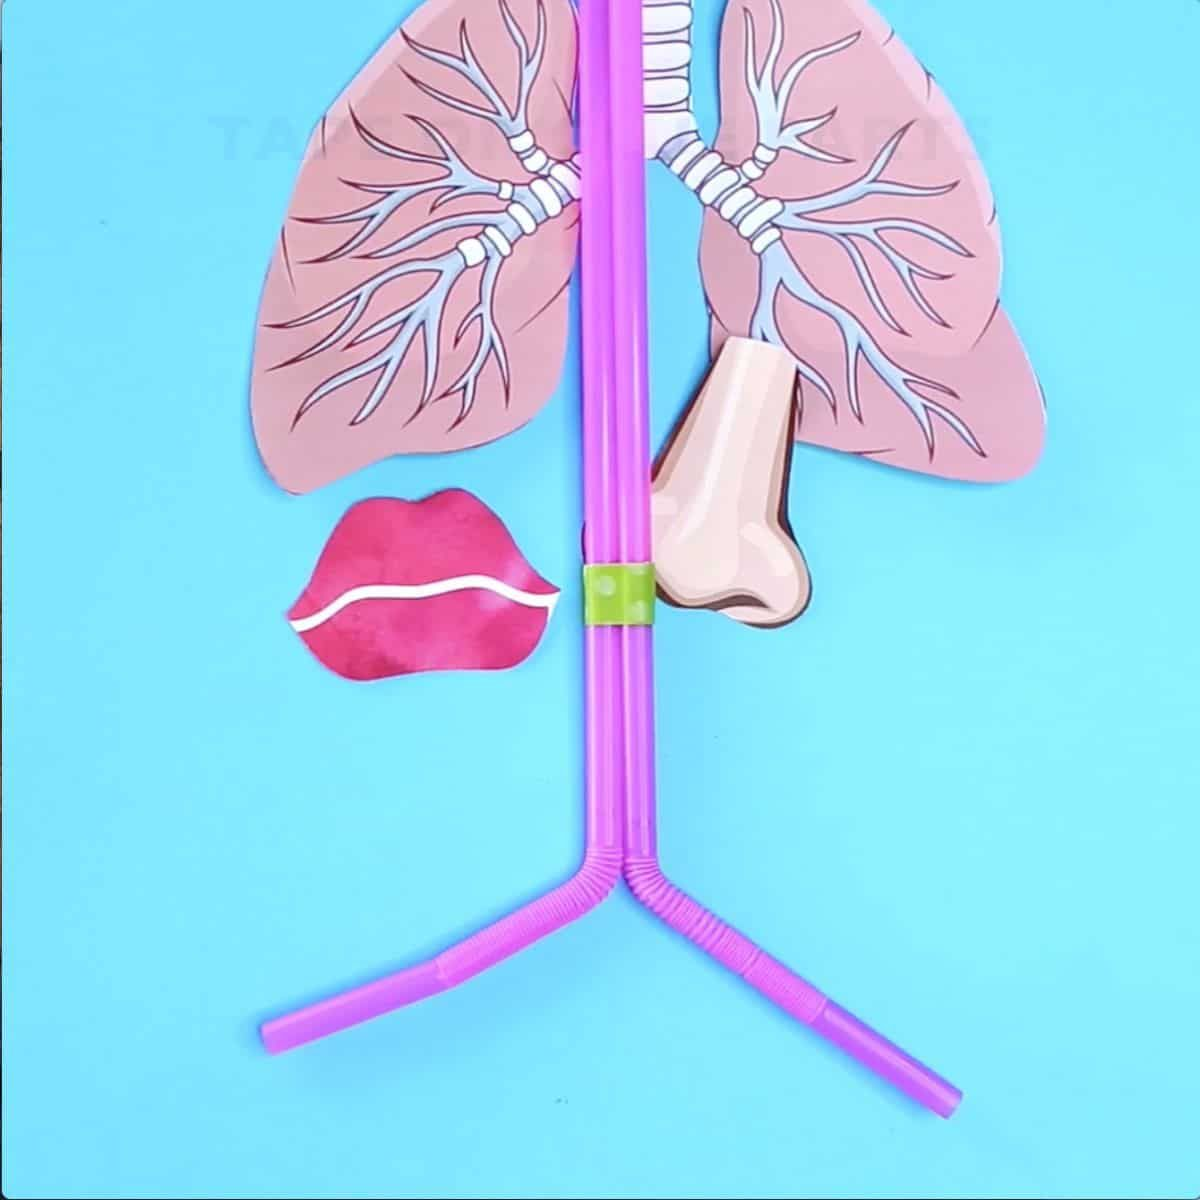 How To Make A Lung Model With Kids Science